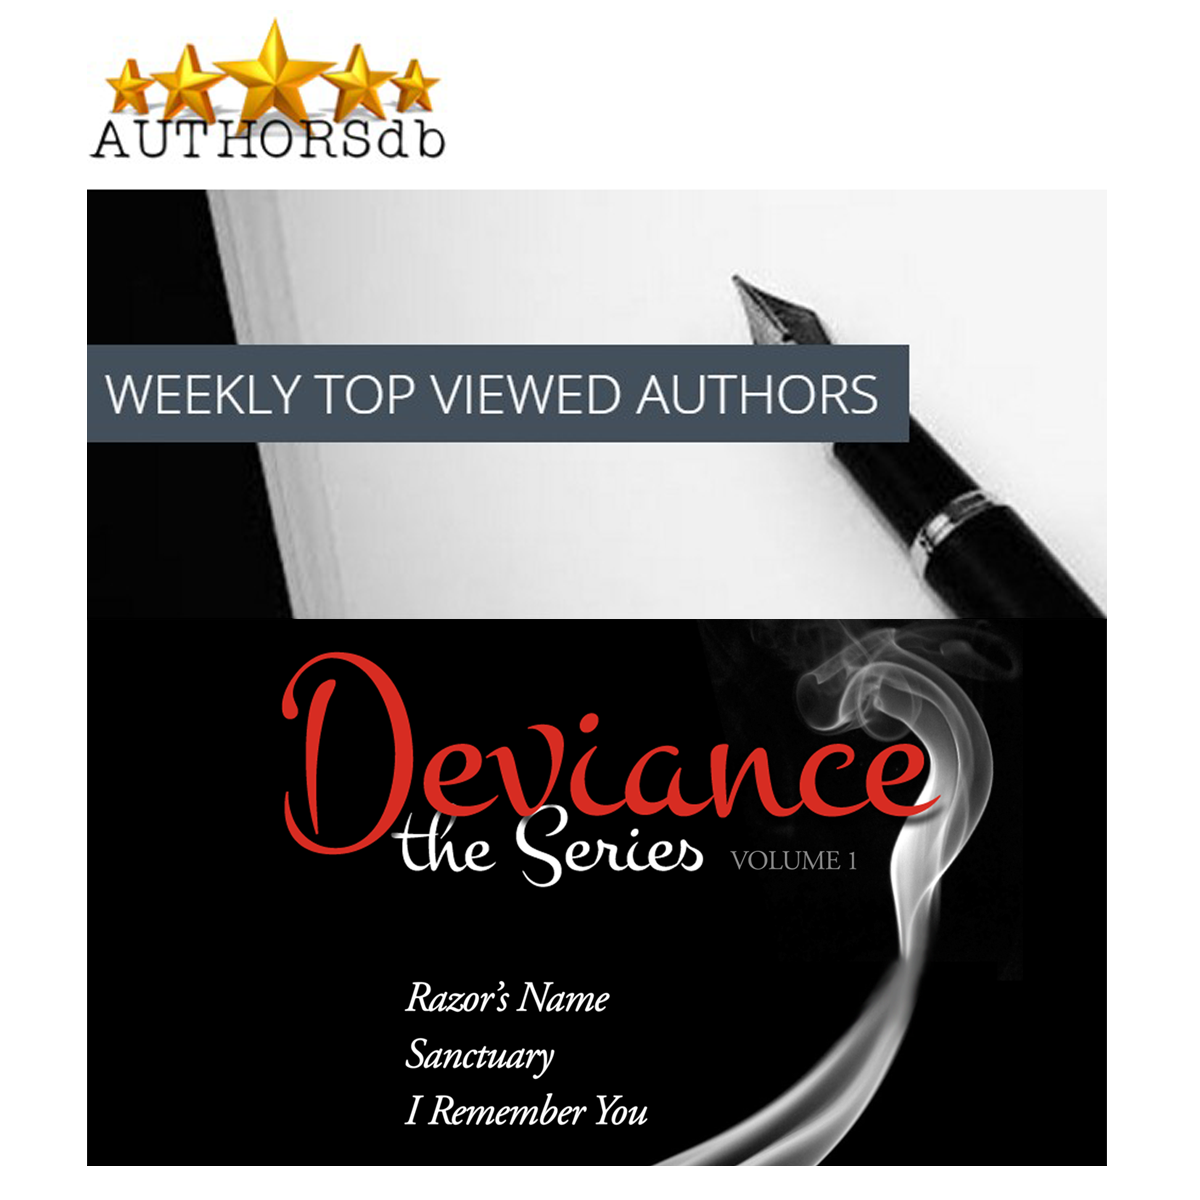 Deviance the Series, Volume 1: Top Ten Author at AUTHORSdb